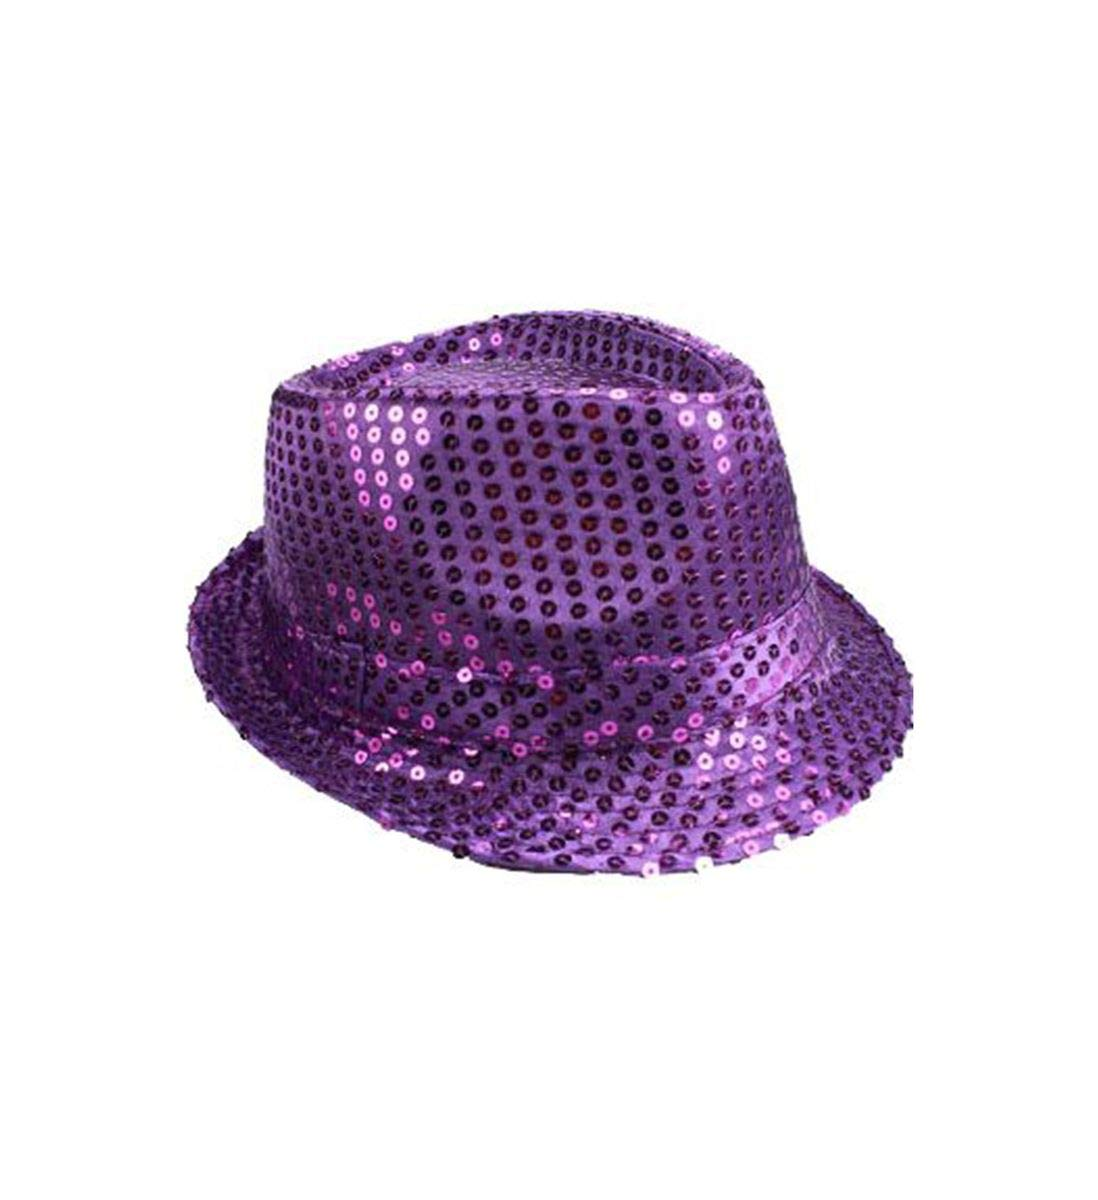 Mozlly Glamorous Purple Sequin Fedora Hat Flashing Disco Retro Funky Glitter Sparkly Universal Luxurious Costume Caps Party Favor Games Banquet Wedding Novelty Headwear Accessories 11 Inch